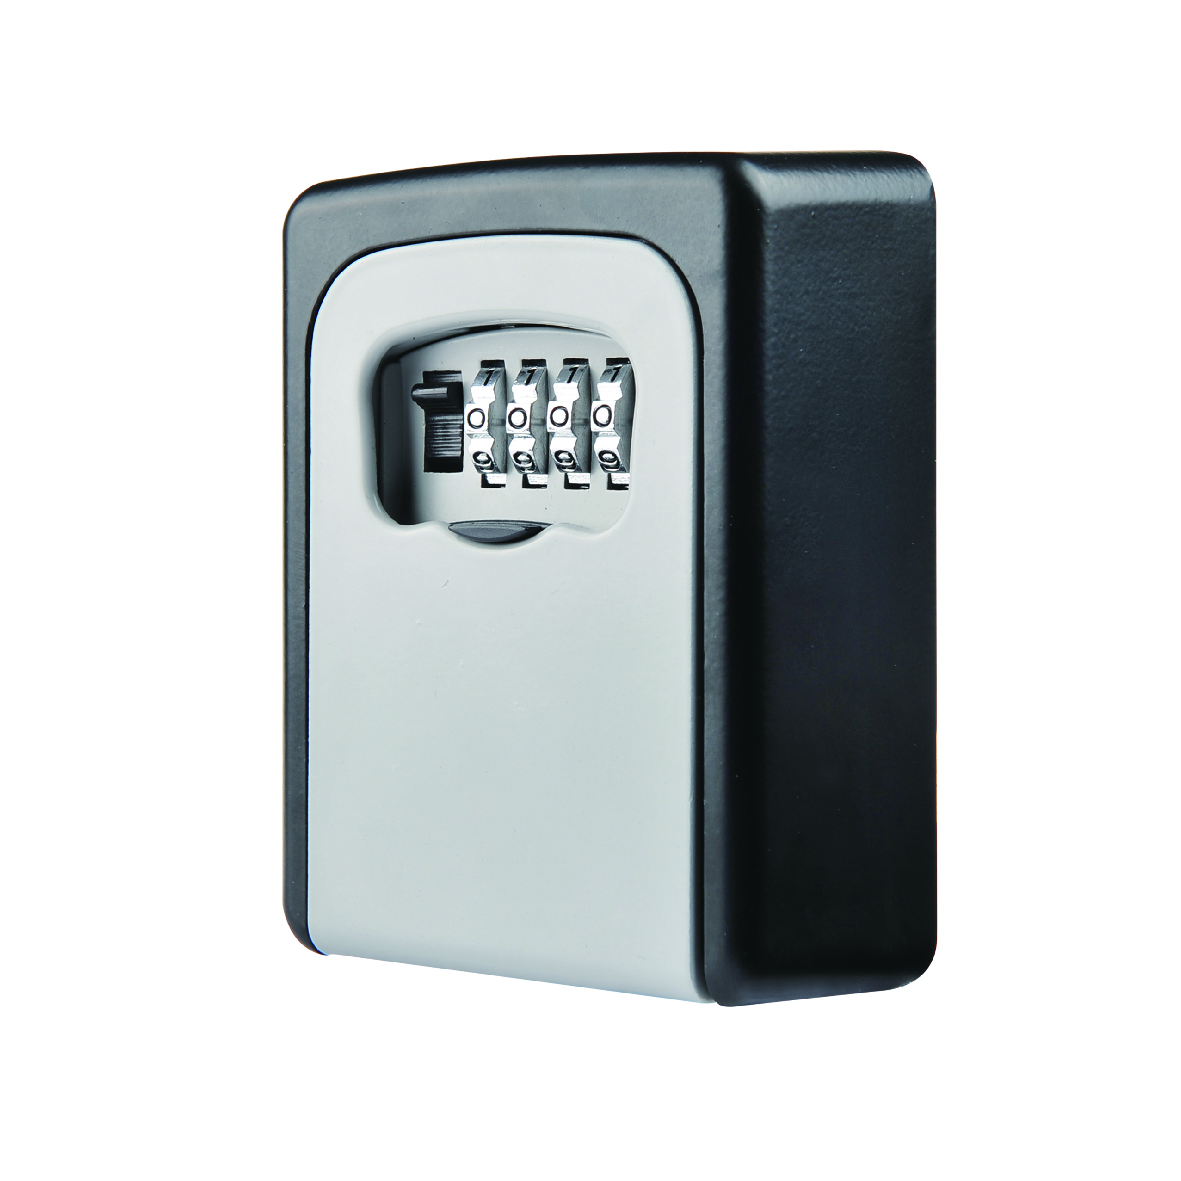 YH9216 Wall Mounted Combination Lock Storage Key Box 4-Digit Safe Security Lock